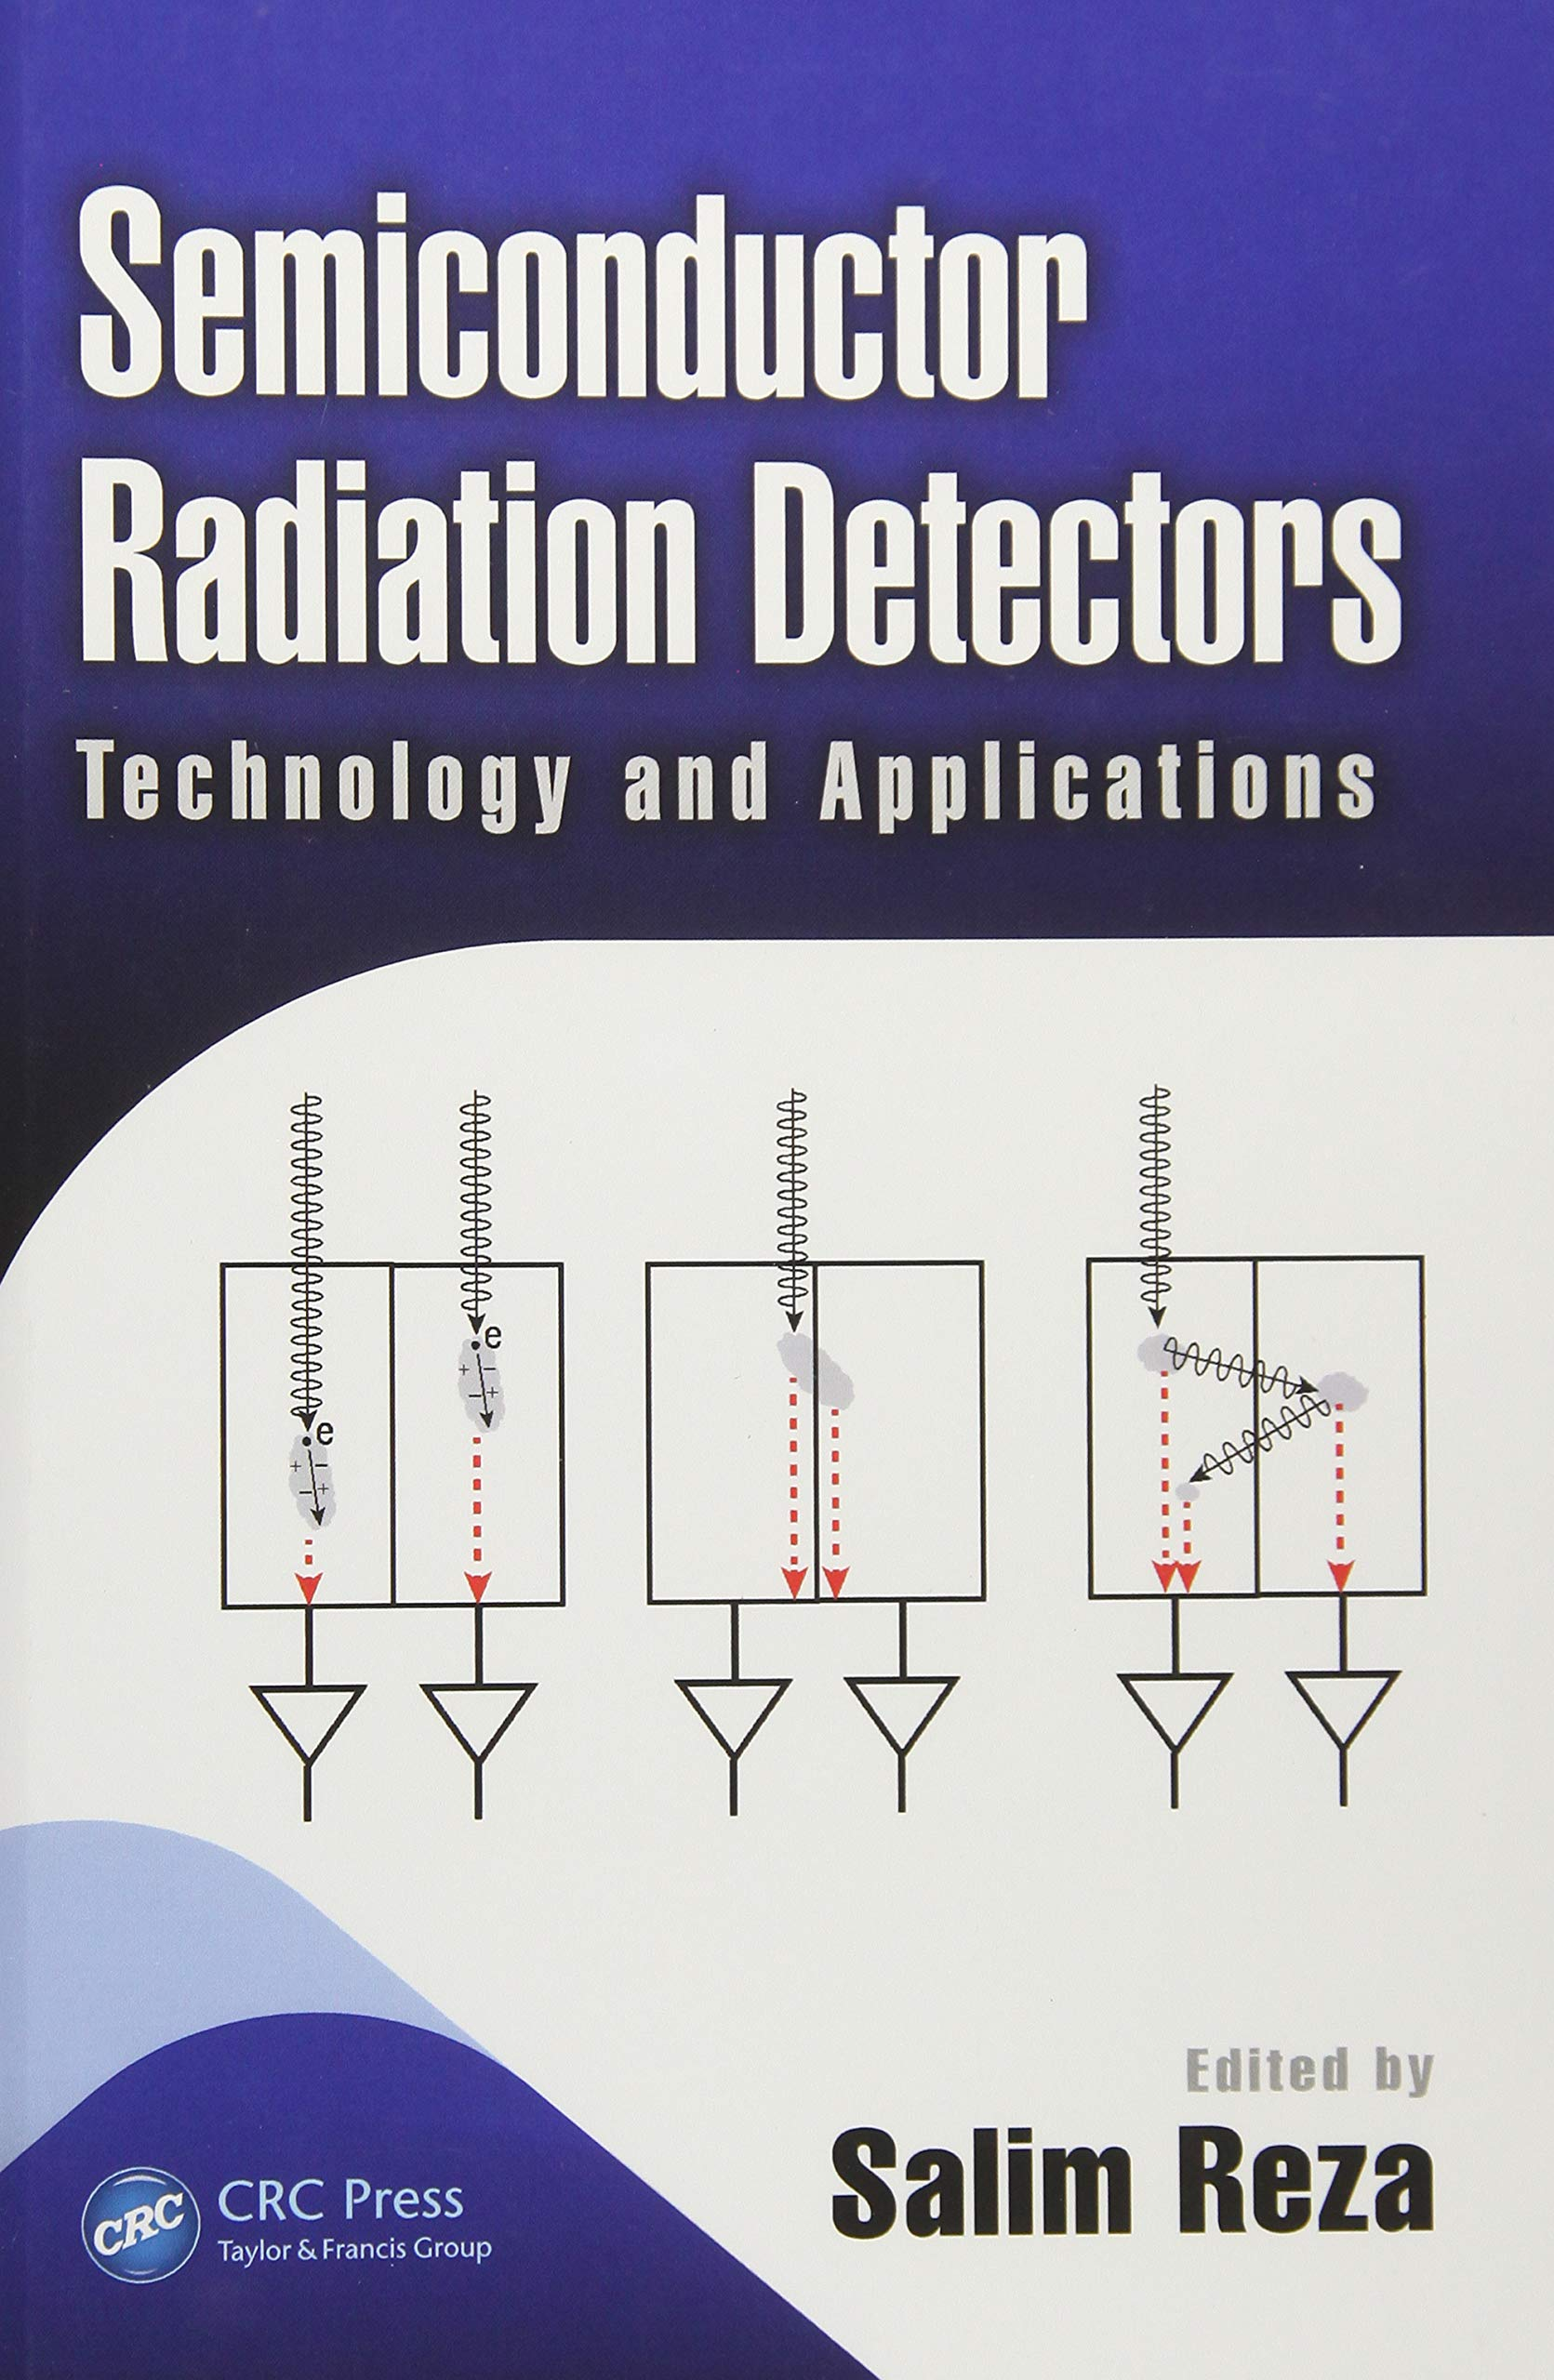 Semiconductor Radiation Detectors: Technology and Applications Devices, Circuits, and Systems: Amazon.es: Salim Reza: Libros en idiomas extranjeros